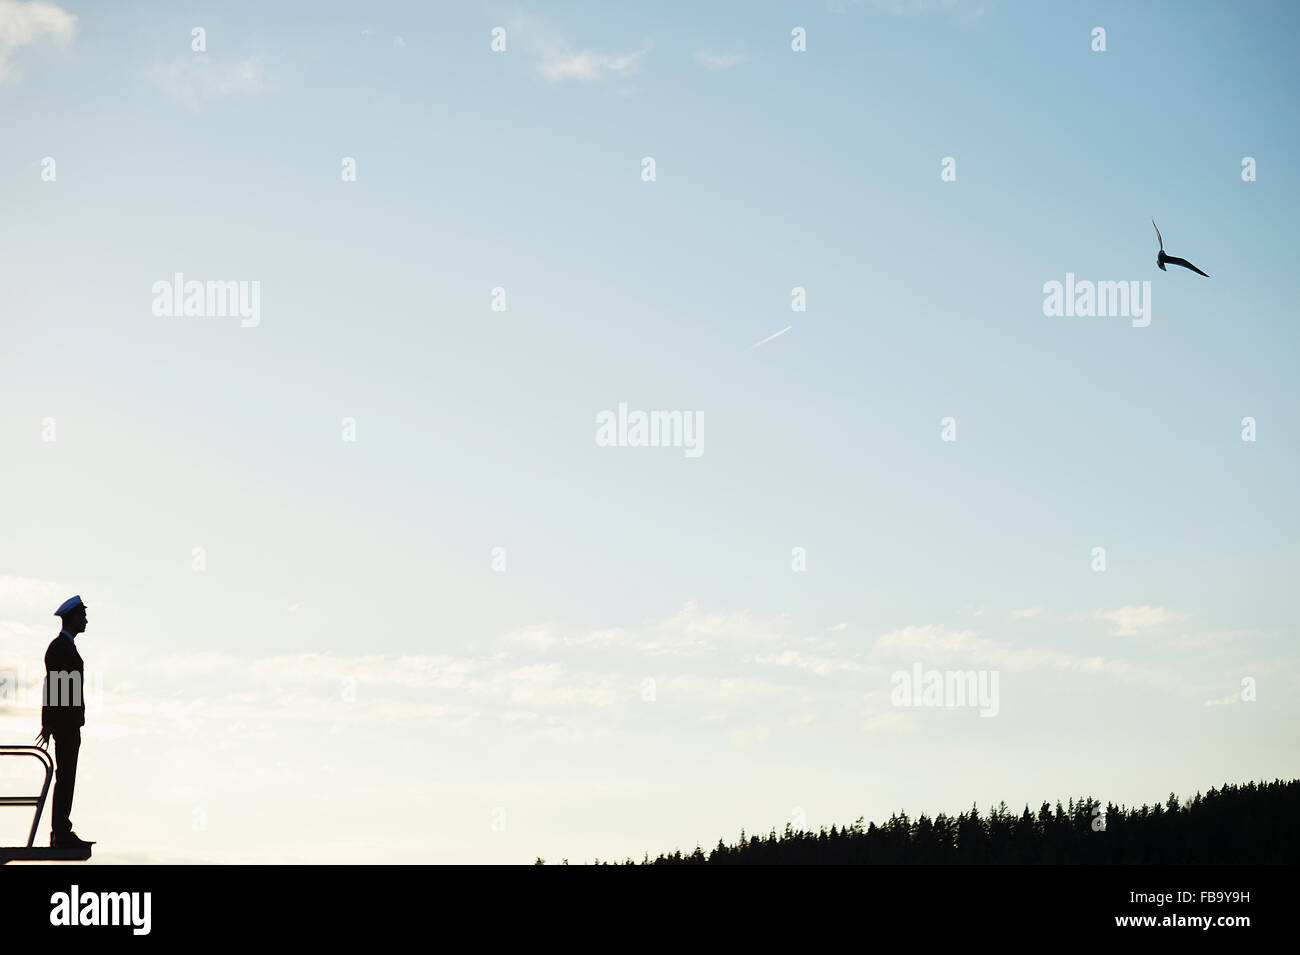 Sweden, Vastmanland, Silhouette of young man wearing mortarboard standing against sky - Stock Image